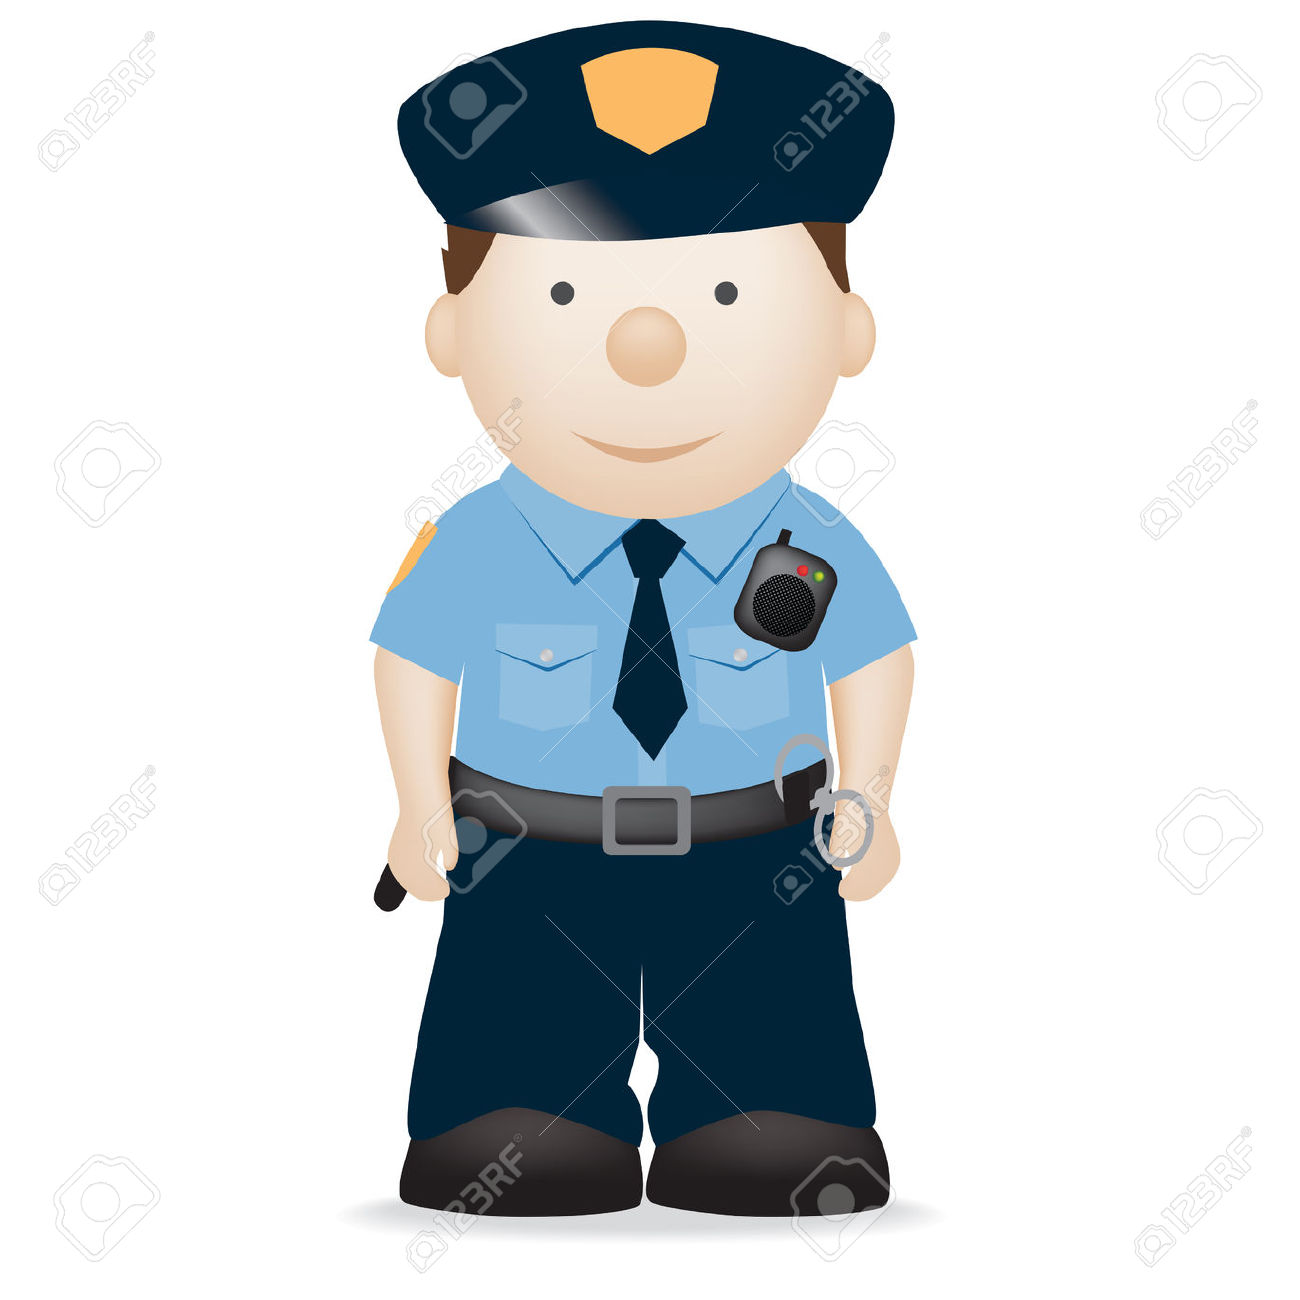 Clipart of security guard clip royalty free School security guard clipart - ClipartFox clip royalty free